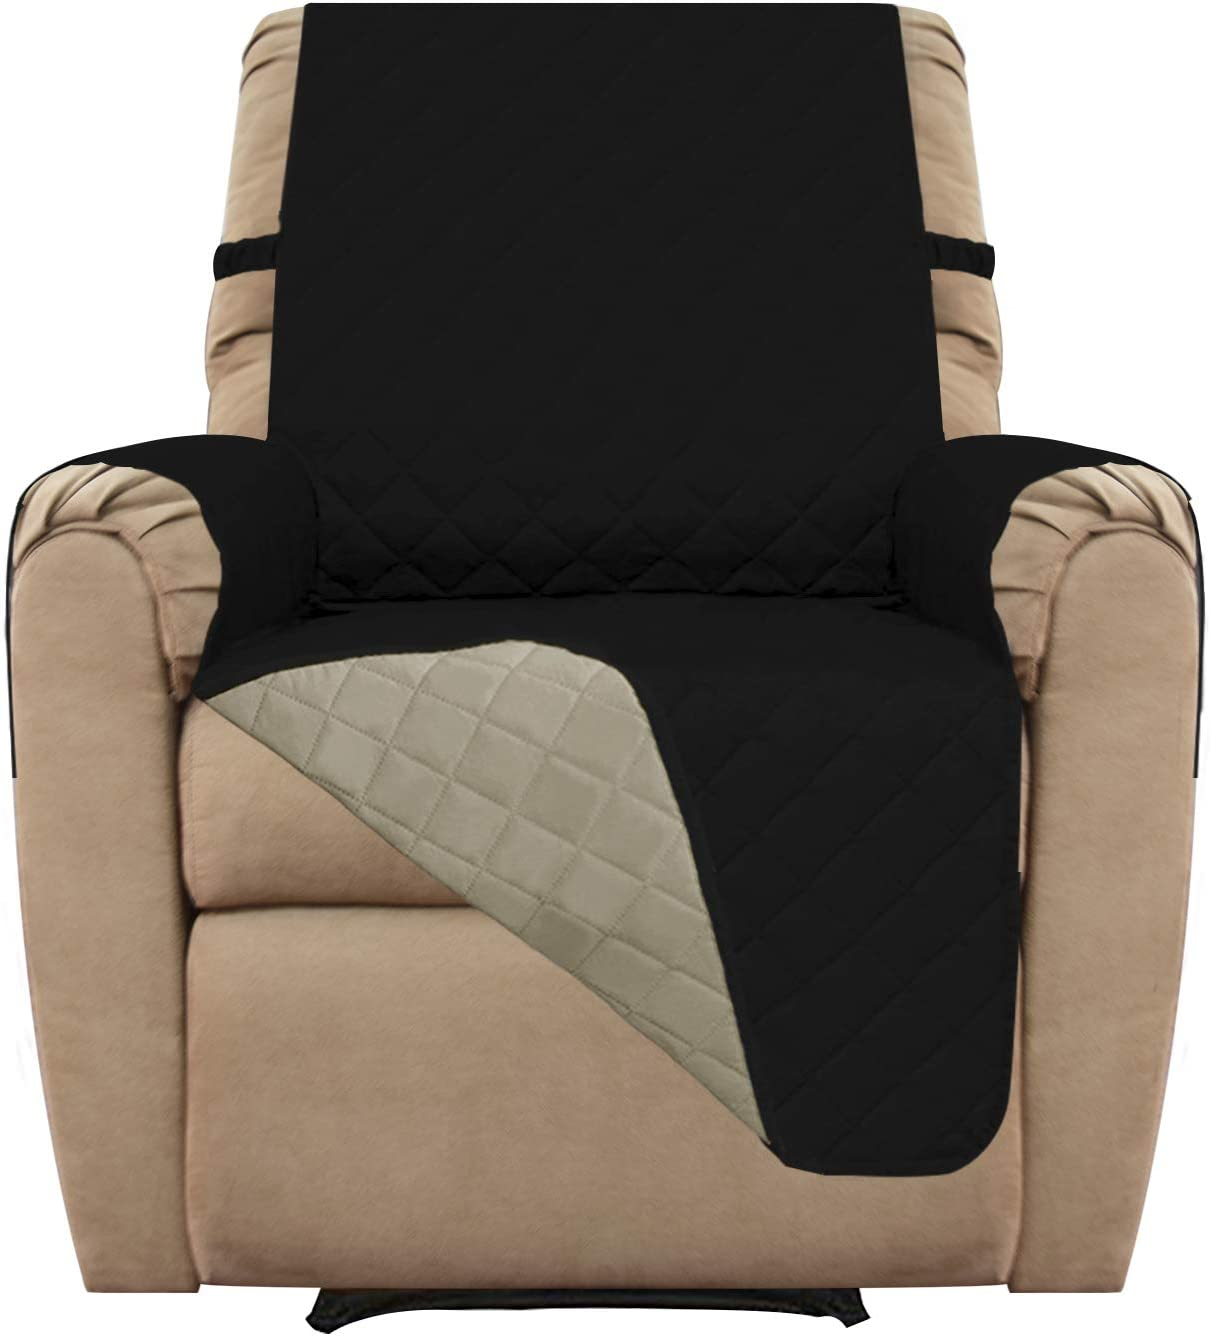 Easy-Going Recliner Cover Sofa Slipcover Reversible Sofa Cover Furniture Protector Couch Cover Water Resistant Elastic Straps PetsKidsChildrenDogCat(Recliner,Black/Beige)